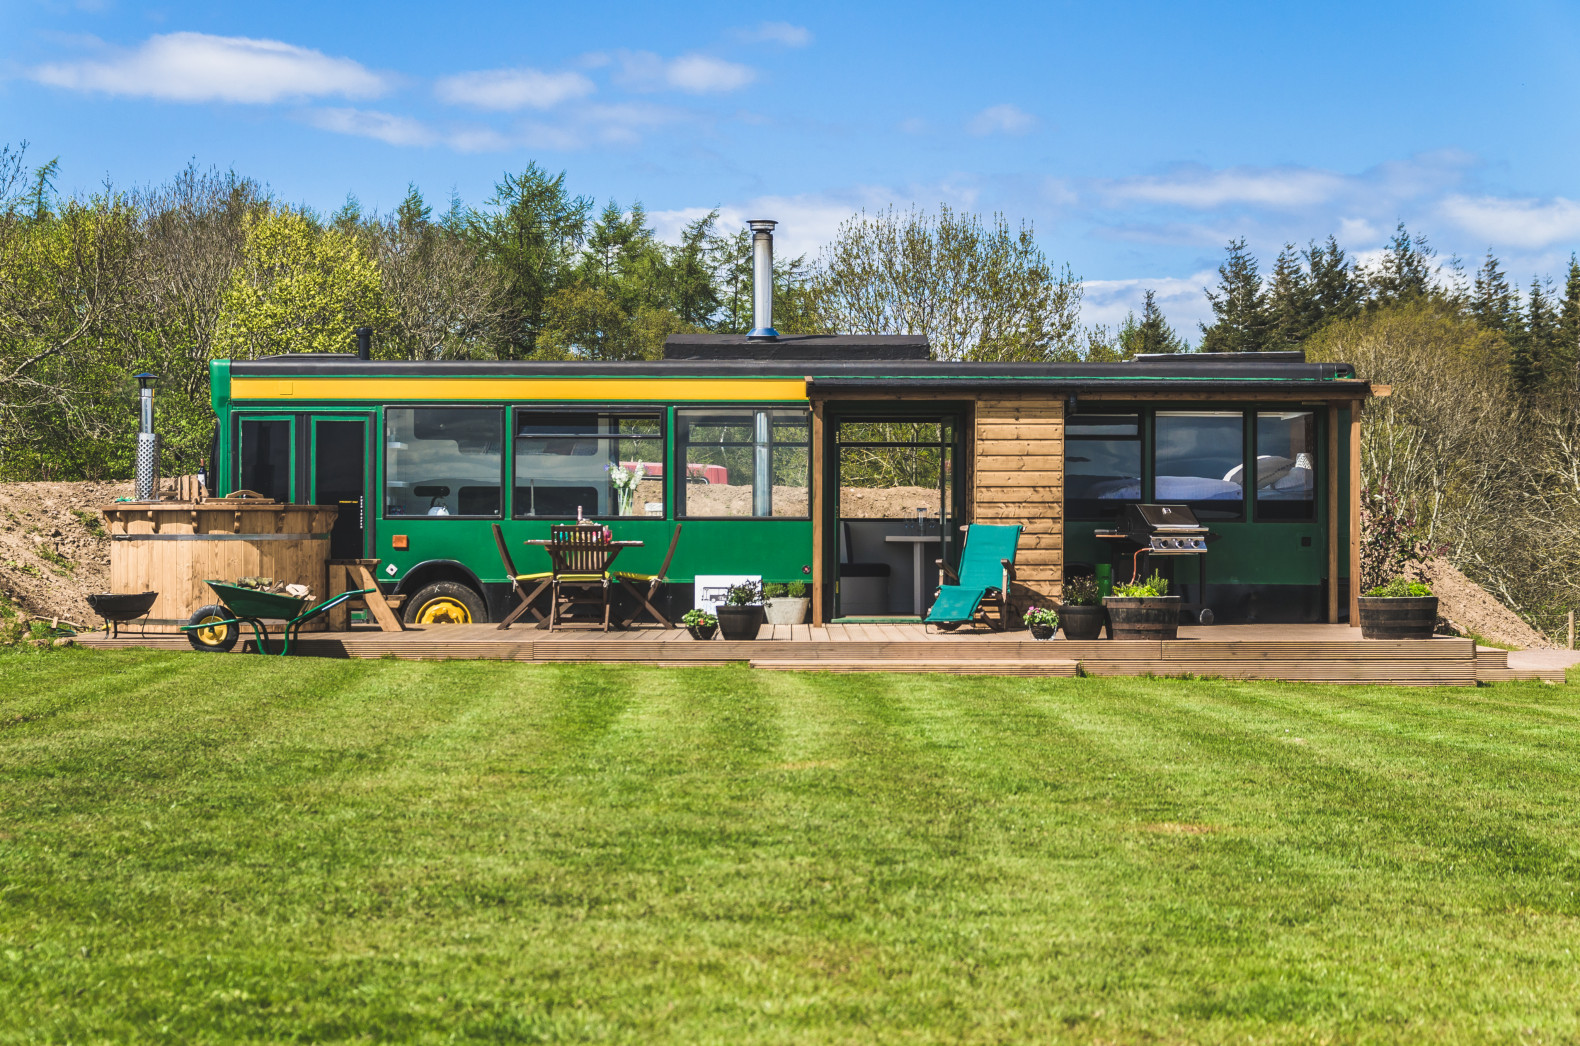 This gorgeous converted bus hotel in Scotland pulls out all the stops